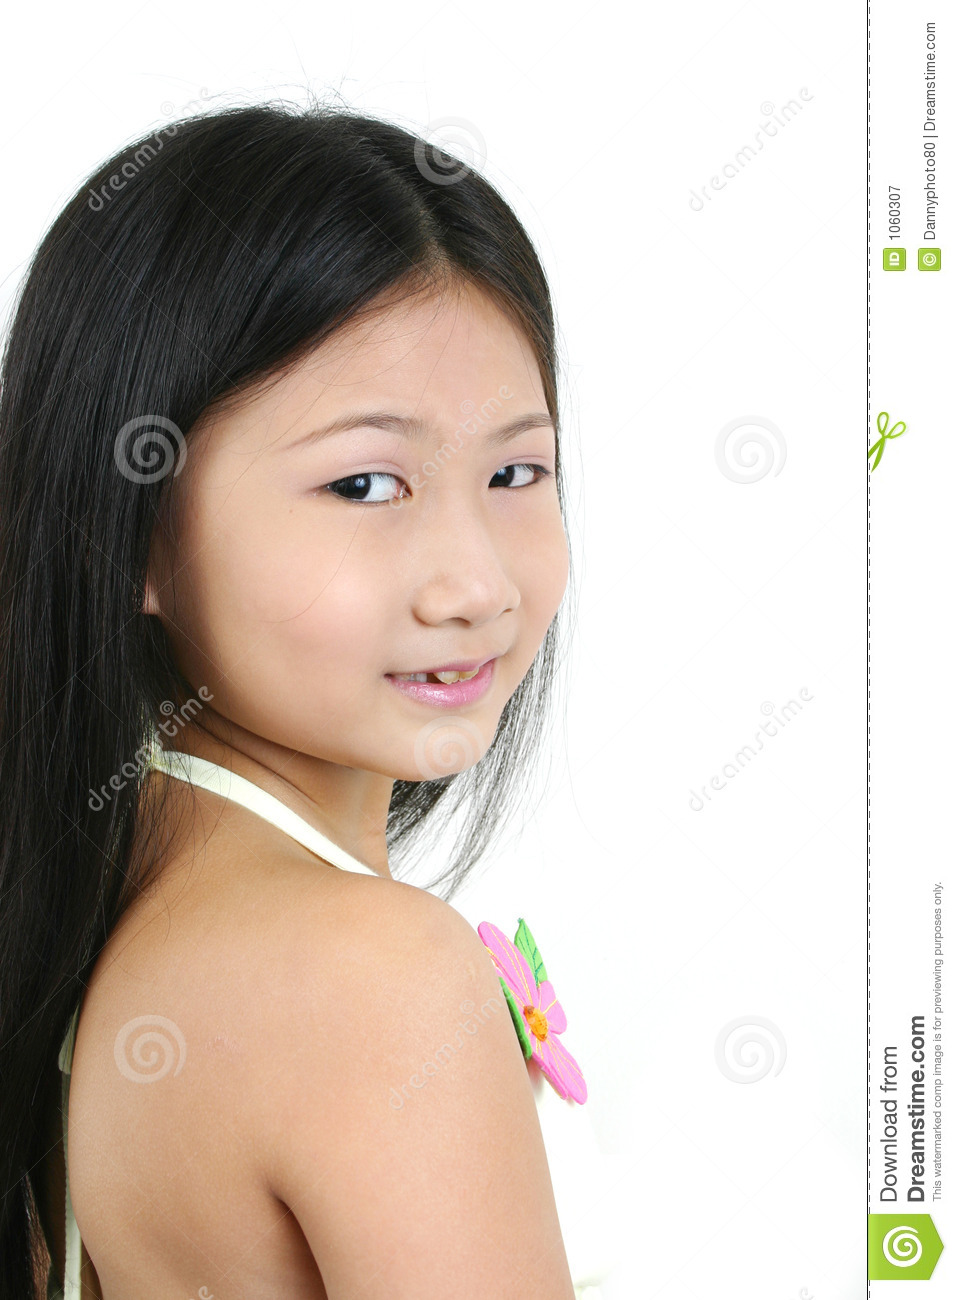 Young Asian Teen Girl Claim She The Most Beautiful With: Young Asian Child 5 Stock Image. Image Of Angie, Daughter